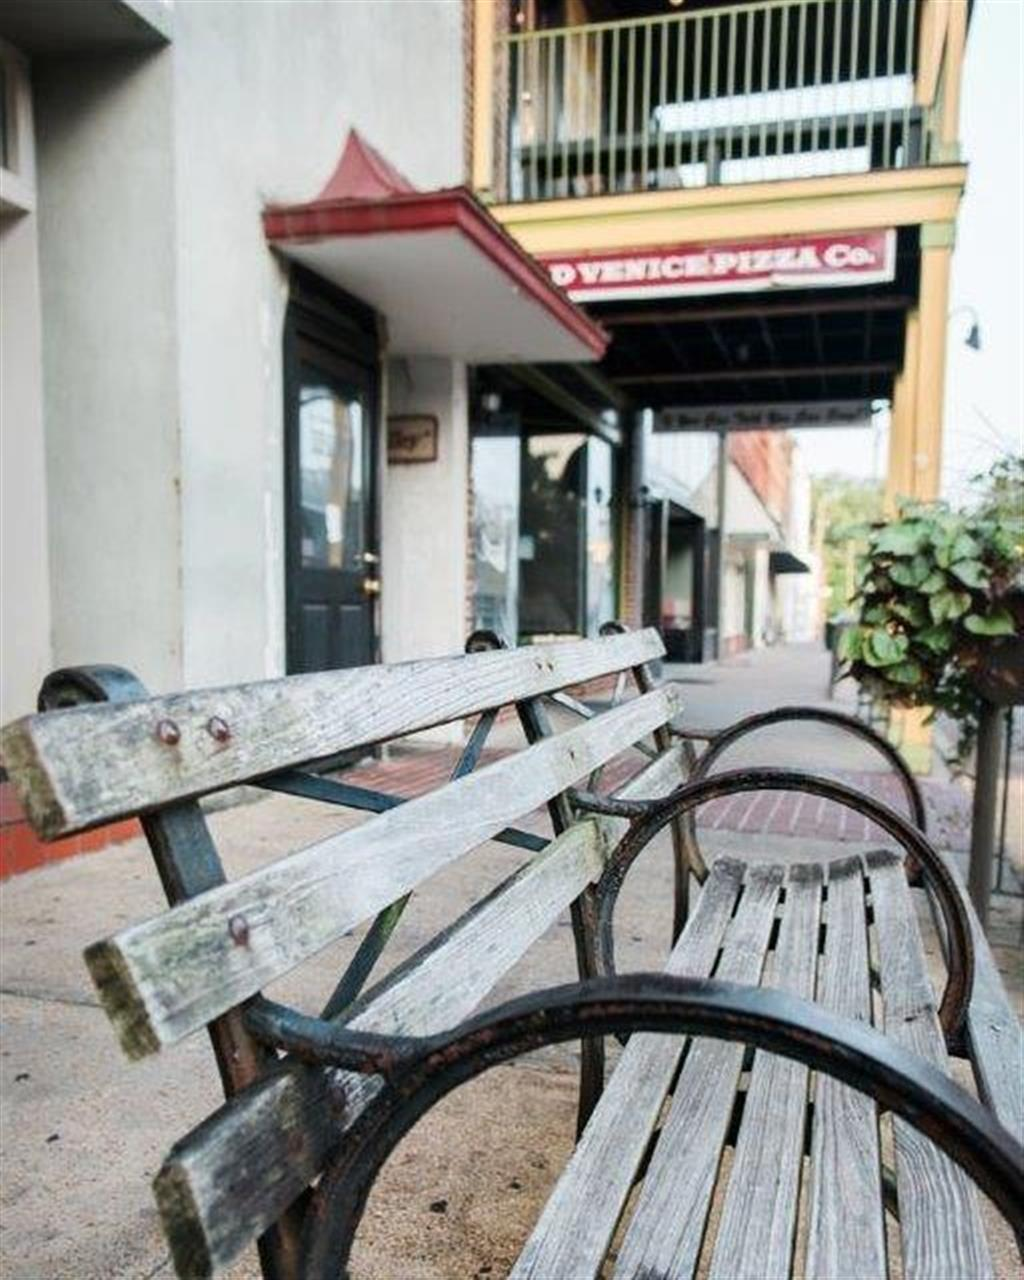 It's a perfect day to enjoy the square! #makeoxfordhome #cryeleike #oxfordms #oxfordsquare #leadingrelocal